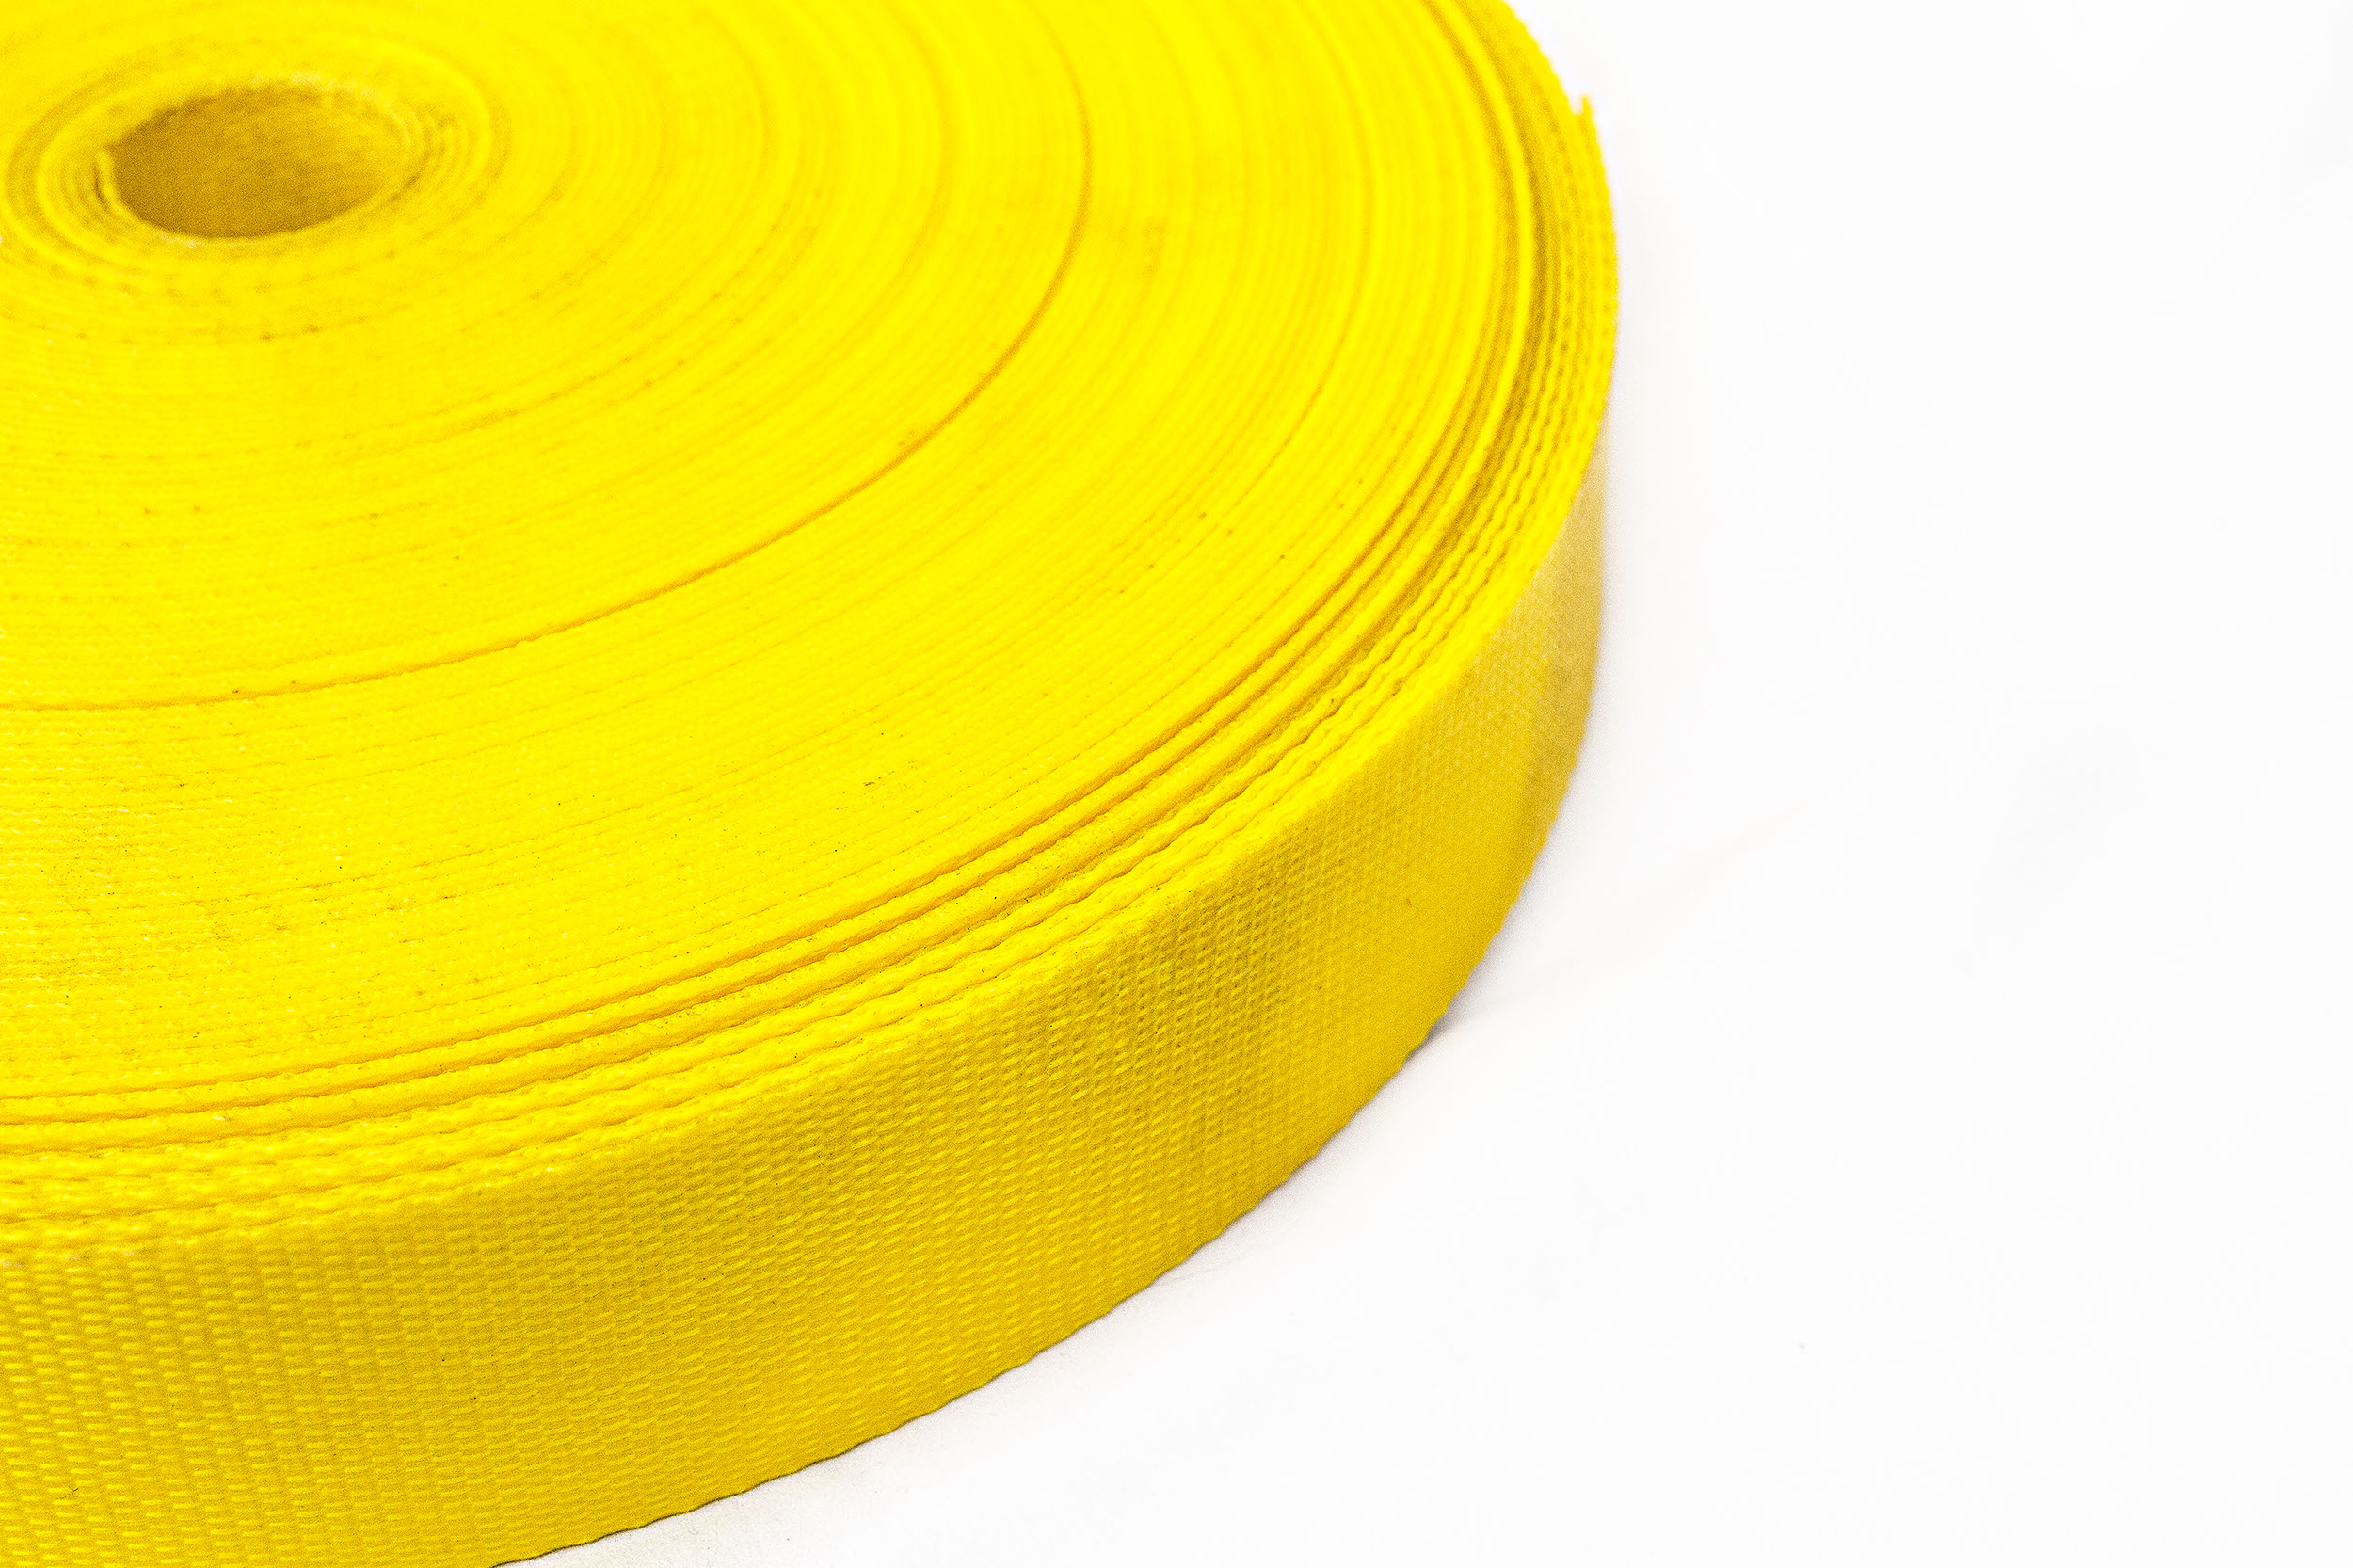 Weldable-Tape-Yellow-2.jpg